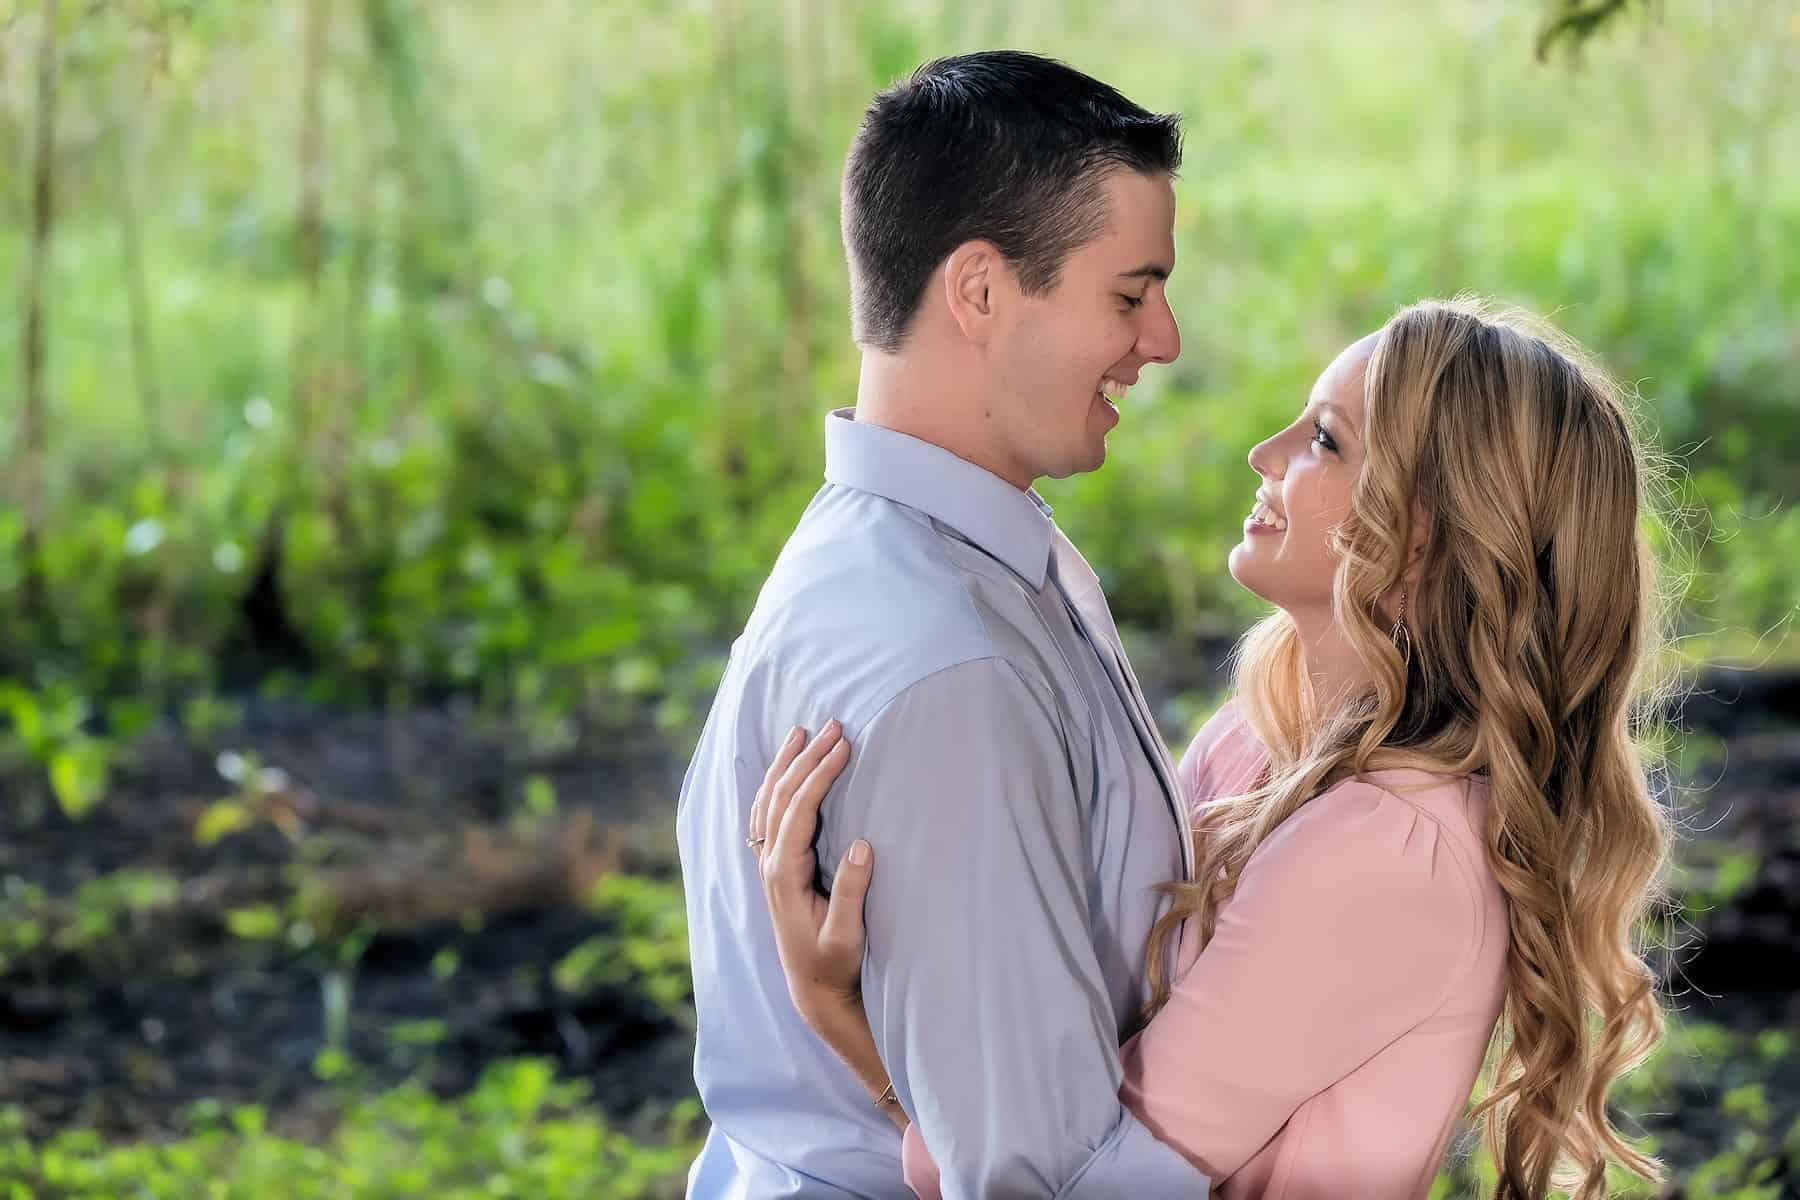 Bill Frederick Engagement Photos for a happy couple